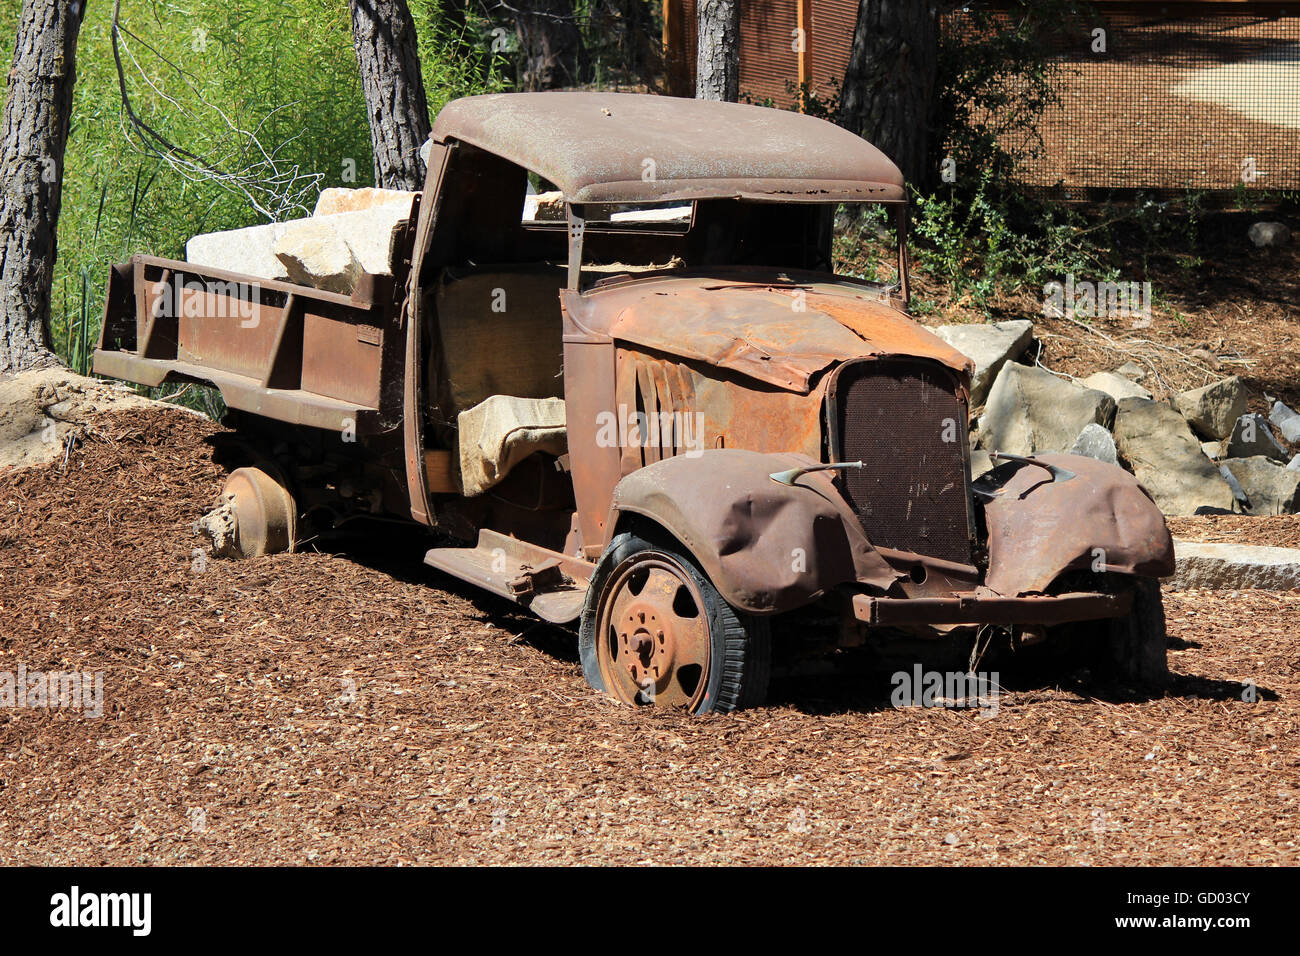 Old Rusted Truck Stock Photo: 111255451 - Alamy